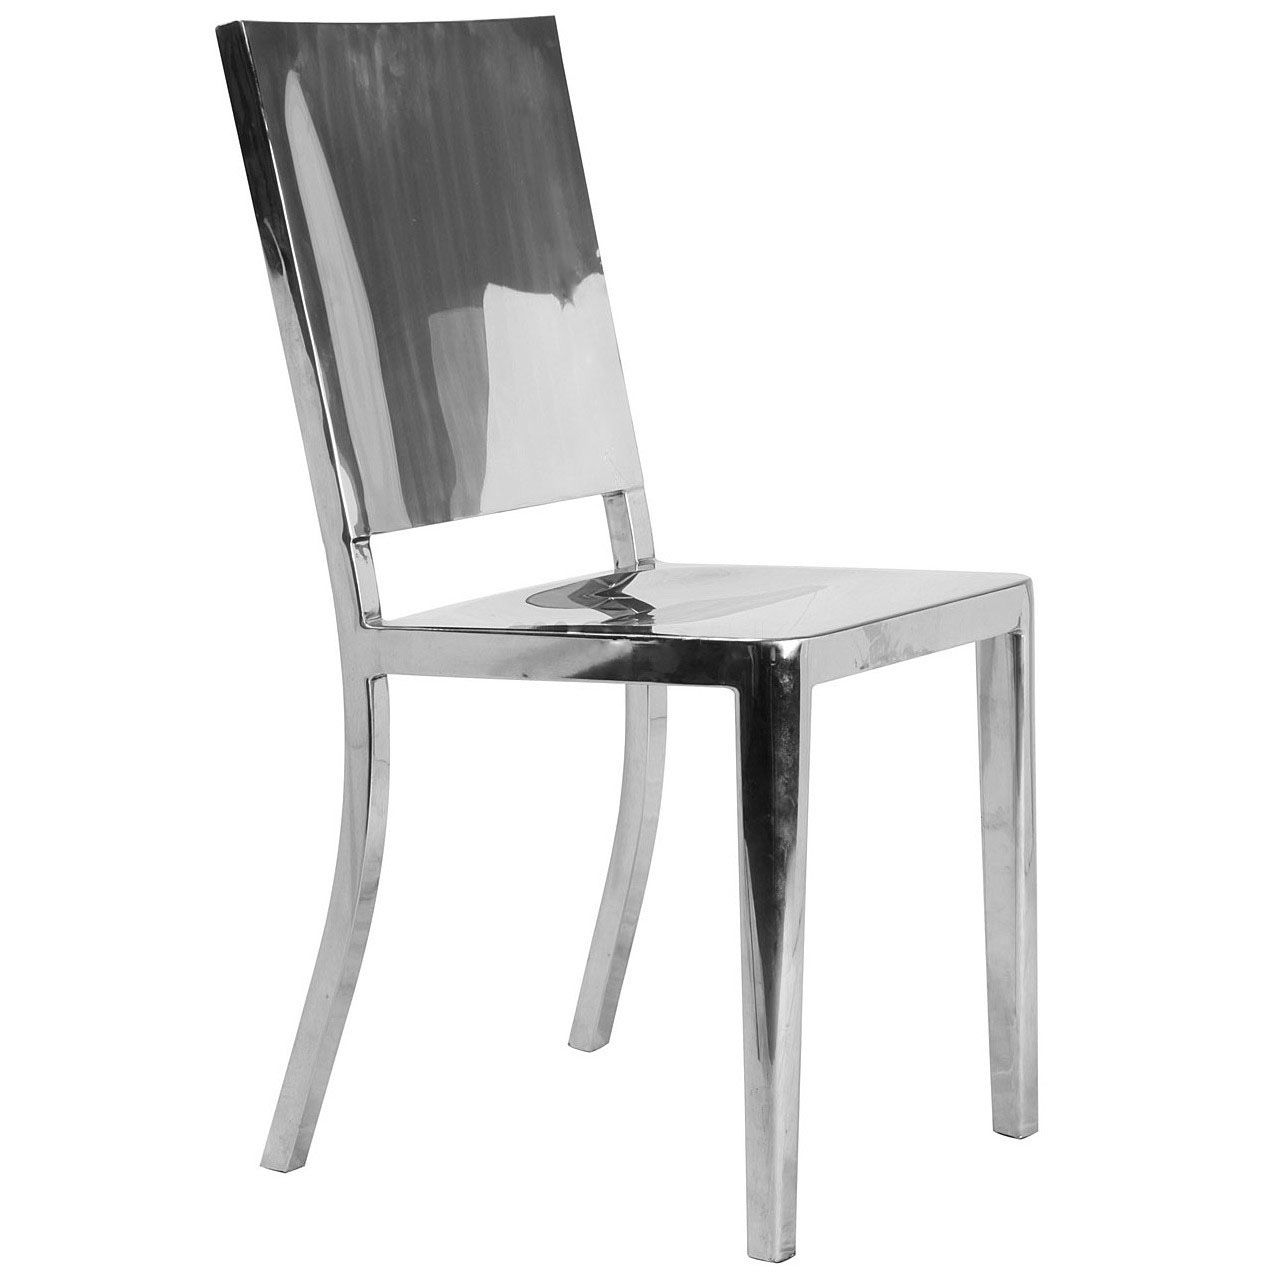 Polish Stainless Steel Huson Chair|ALuminum Navy Chairs And Barstools  Supplier WSD